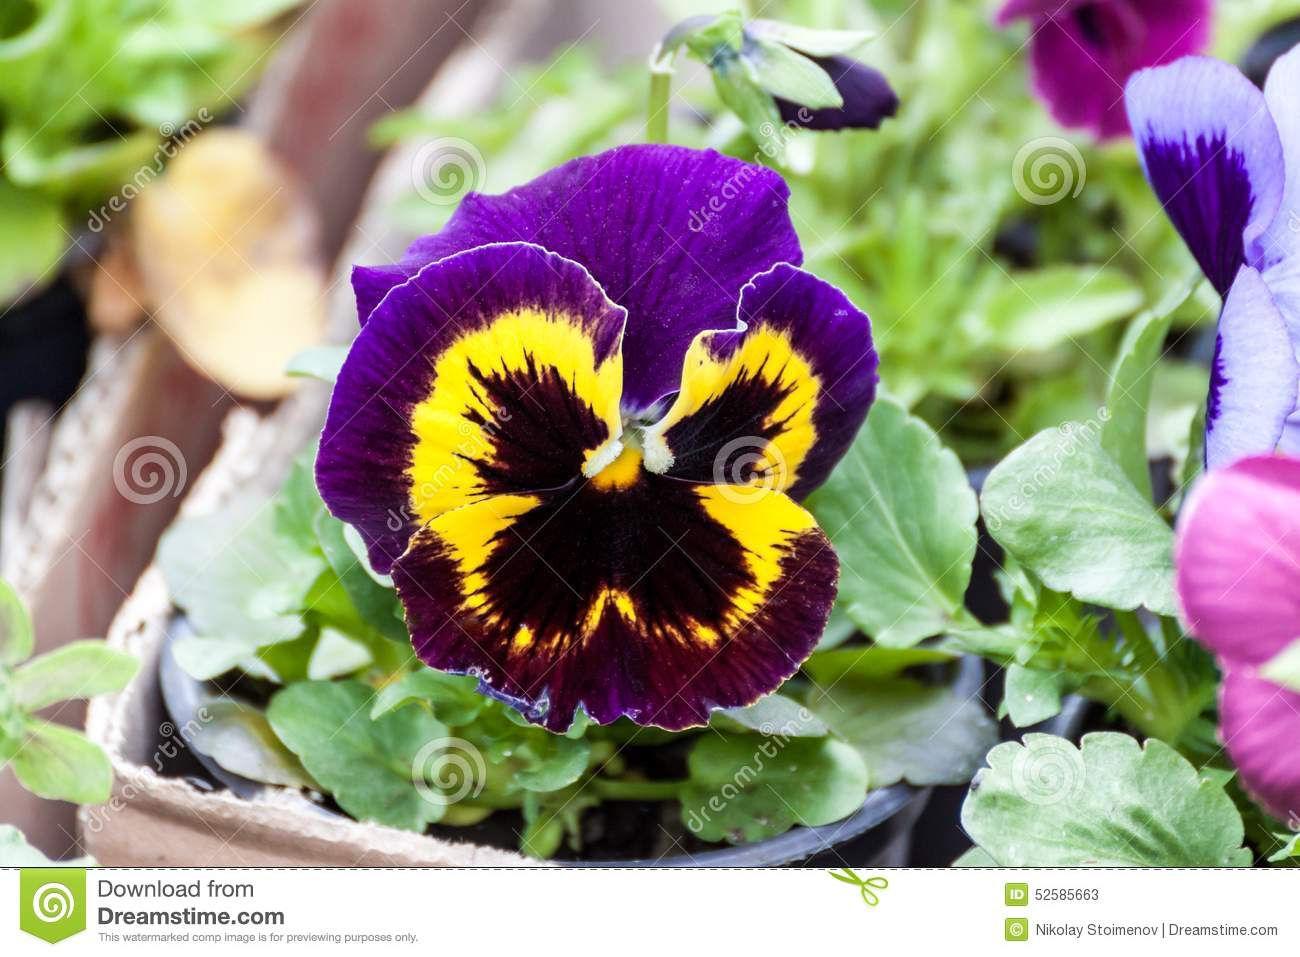 Fiori Viola E Gialli.Dark Blue Black And Yellow Viola Flower Stock Image Image Of